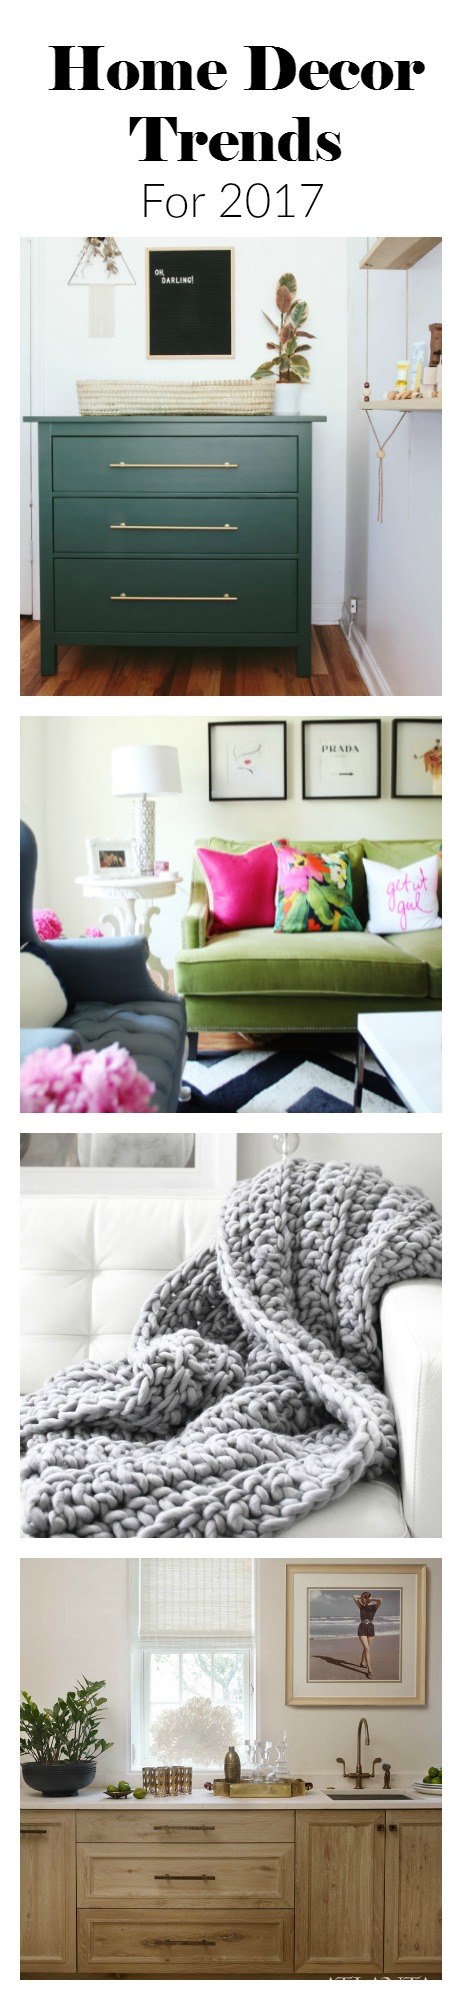 home-decor-trends-2017